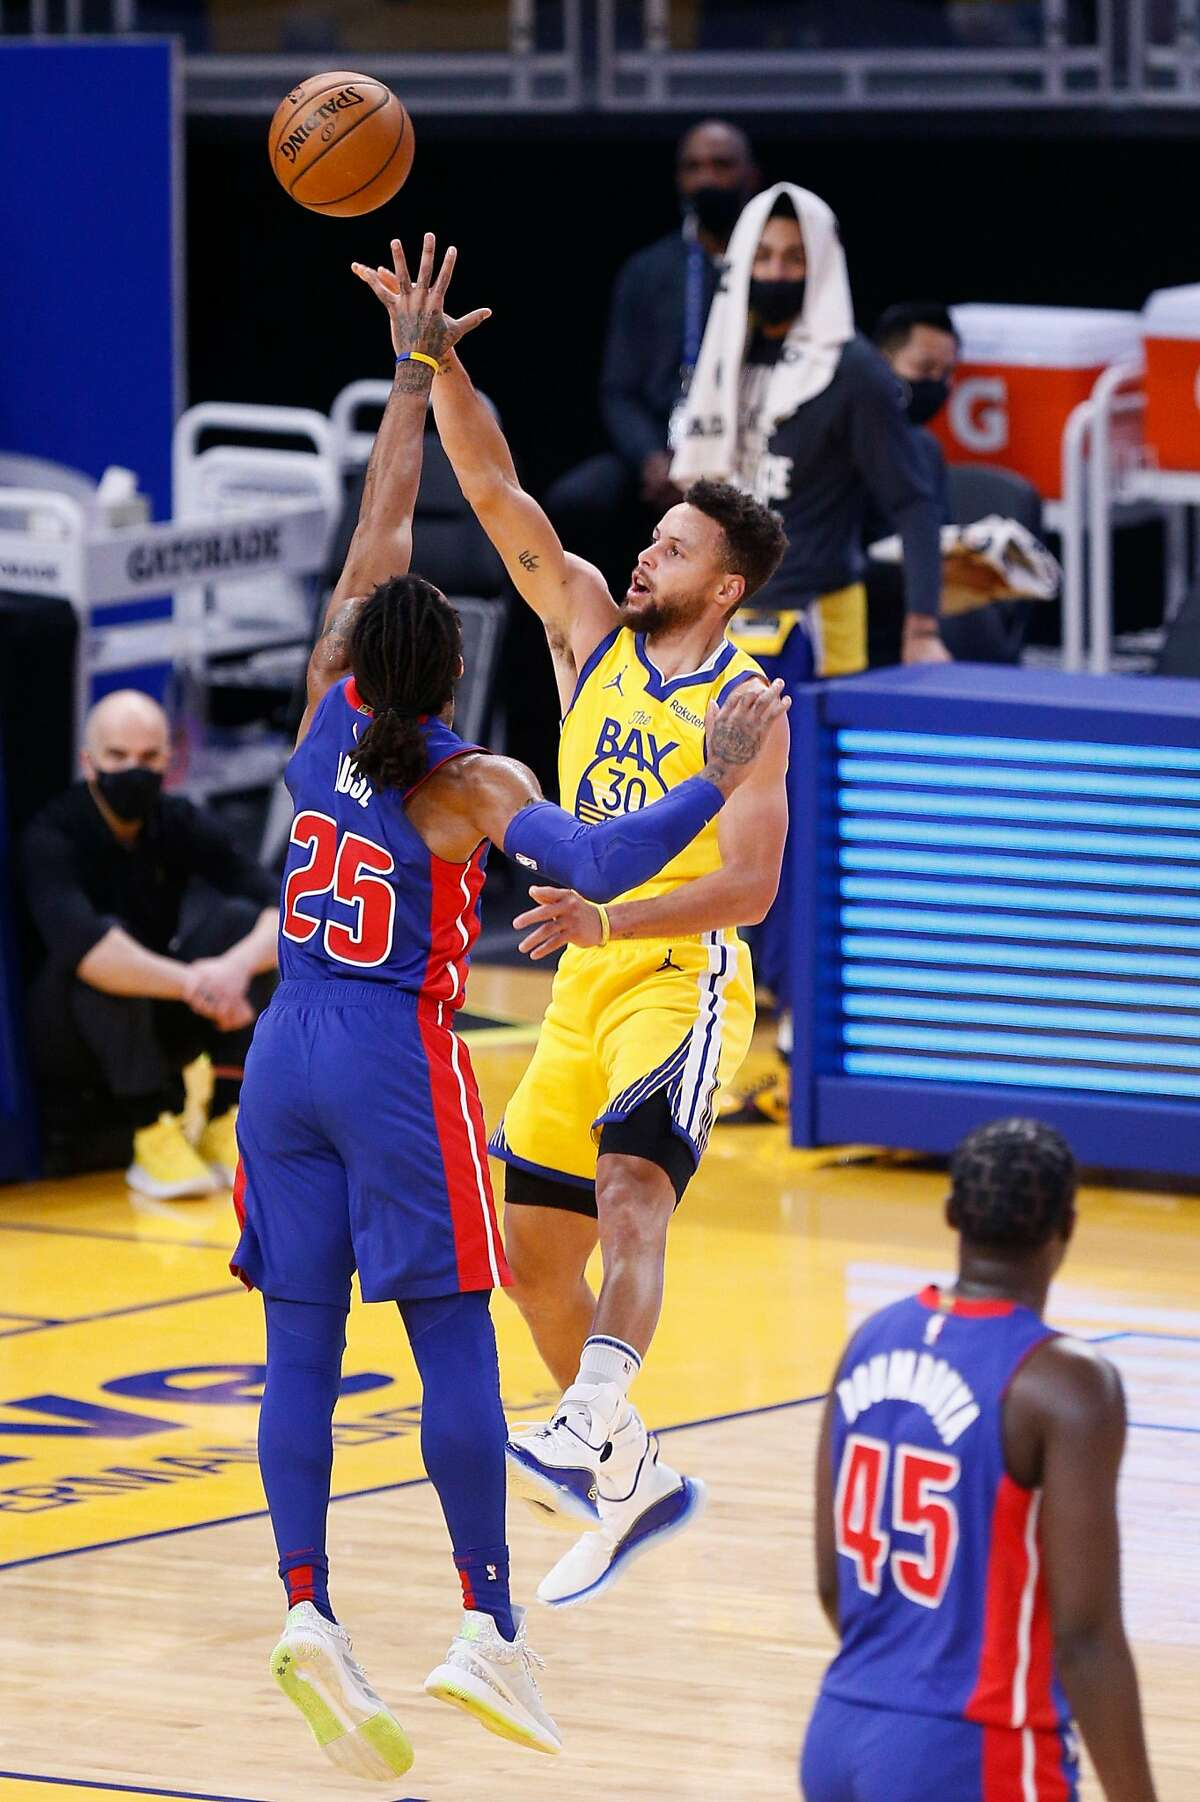 Golden State Warriors guard Stephen Curry (30) scores a two-point field goal against Detroit Pistons guard Derrick Rose (25) in the second period of an NBA game at Chase Center on Saturday, Jan. 30, 2021, in San Francisco, Calif.